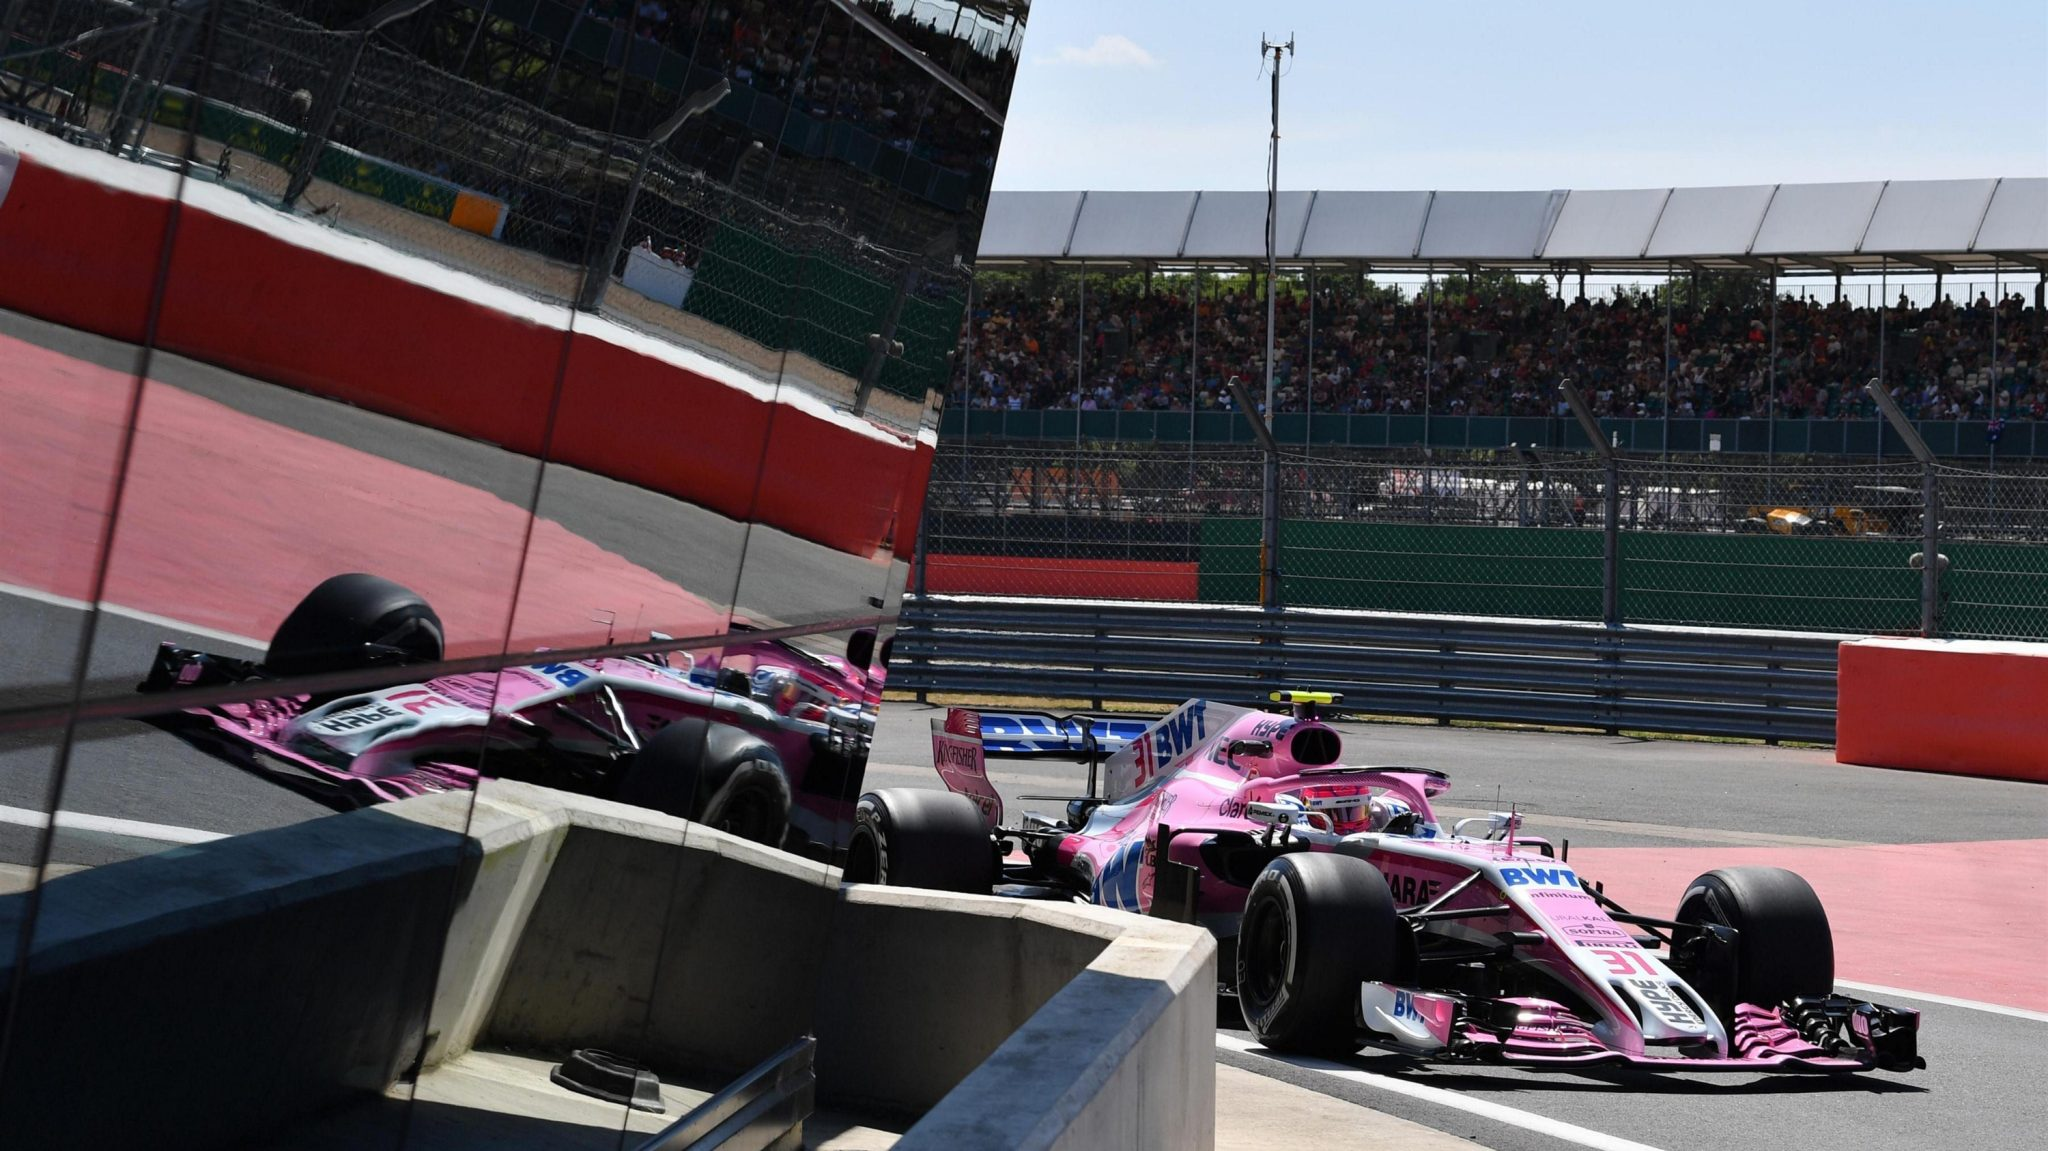 https://www.formula1.com/content/fom-website/en/latest/features/2018/7/gallery--the-best-images-from-great-britain/_jcr_content/featureContent/manual_gallery/image41.img.2048.medium.jpg/1530884144456.jpg